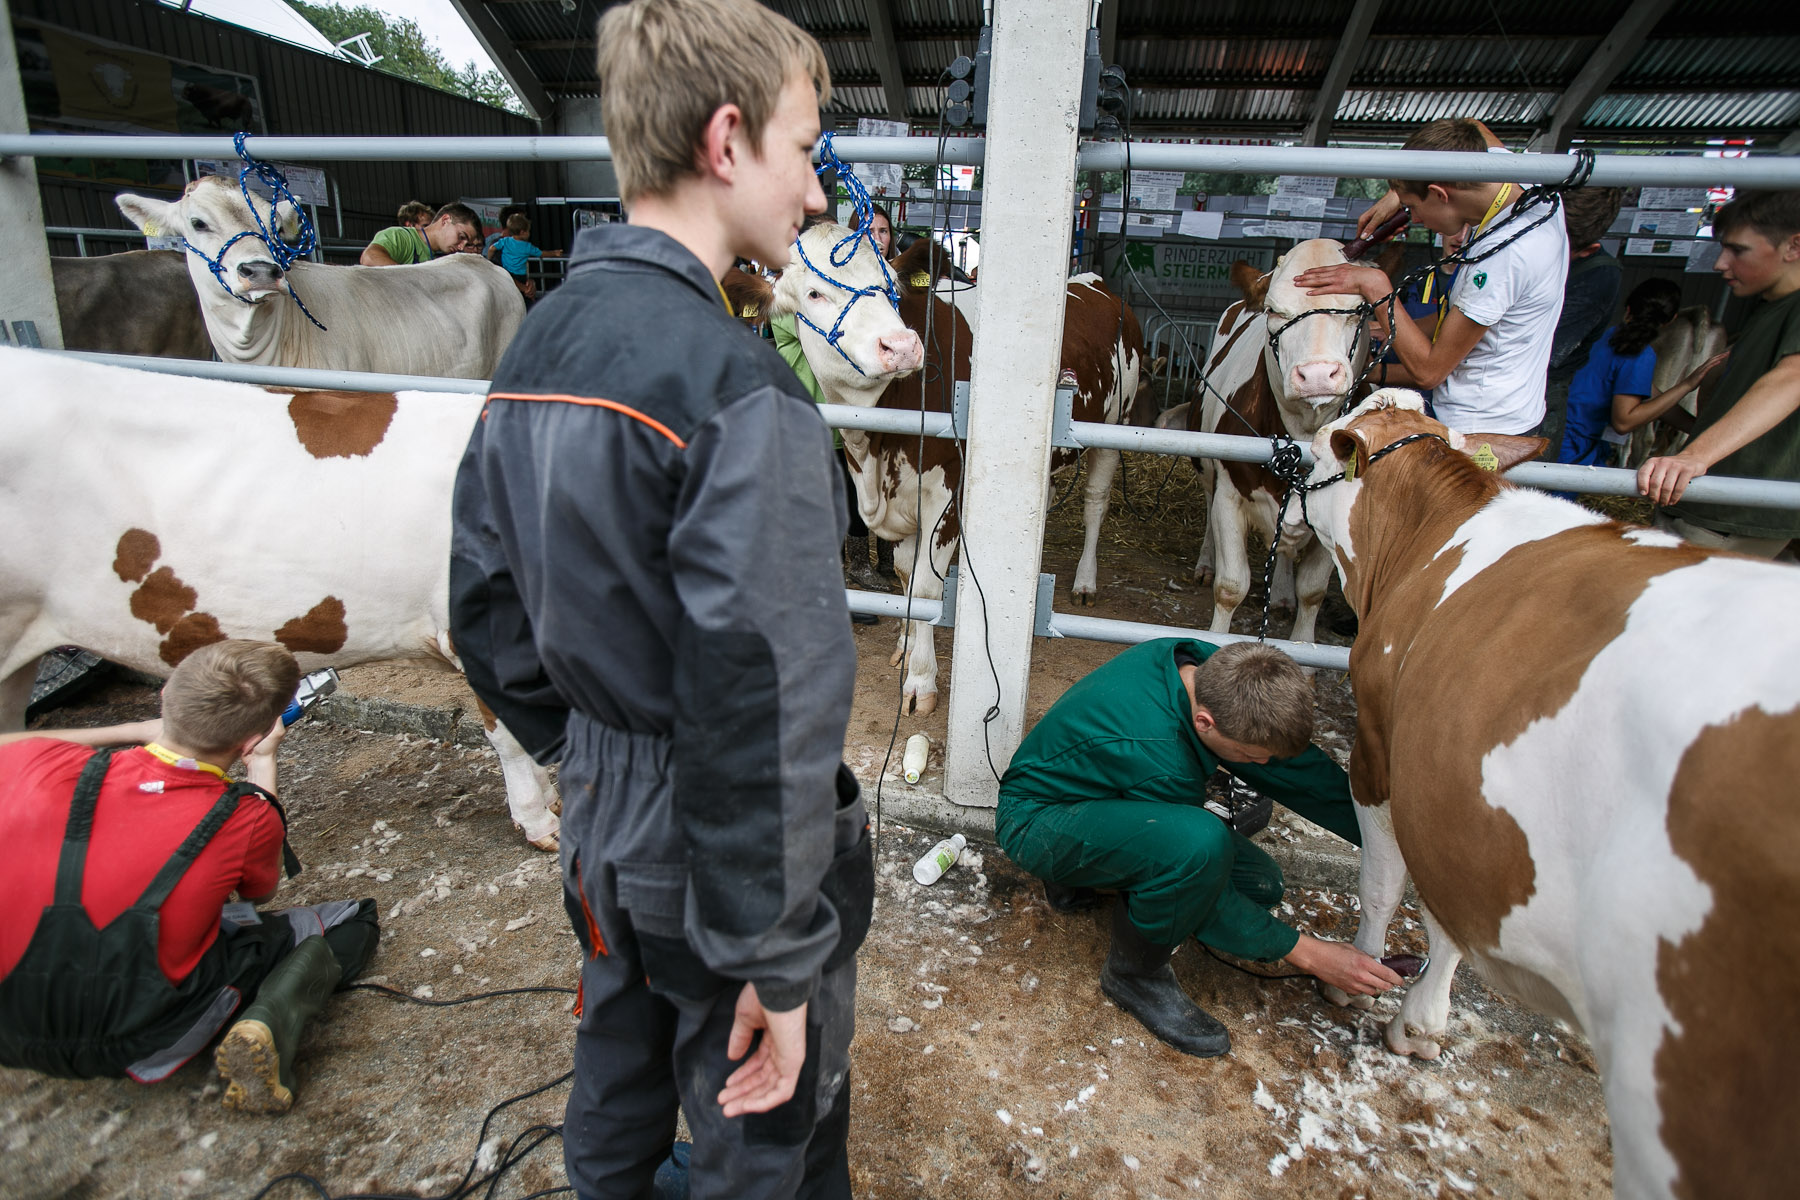 Students from the International School of Young Breeders sheer cows during a livestock preparation presentation at the 53rd agricultural fair Agra in Gornja Radgona, Slovenia, Aug. 22, 2015.